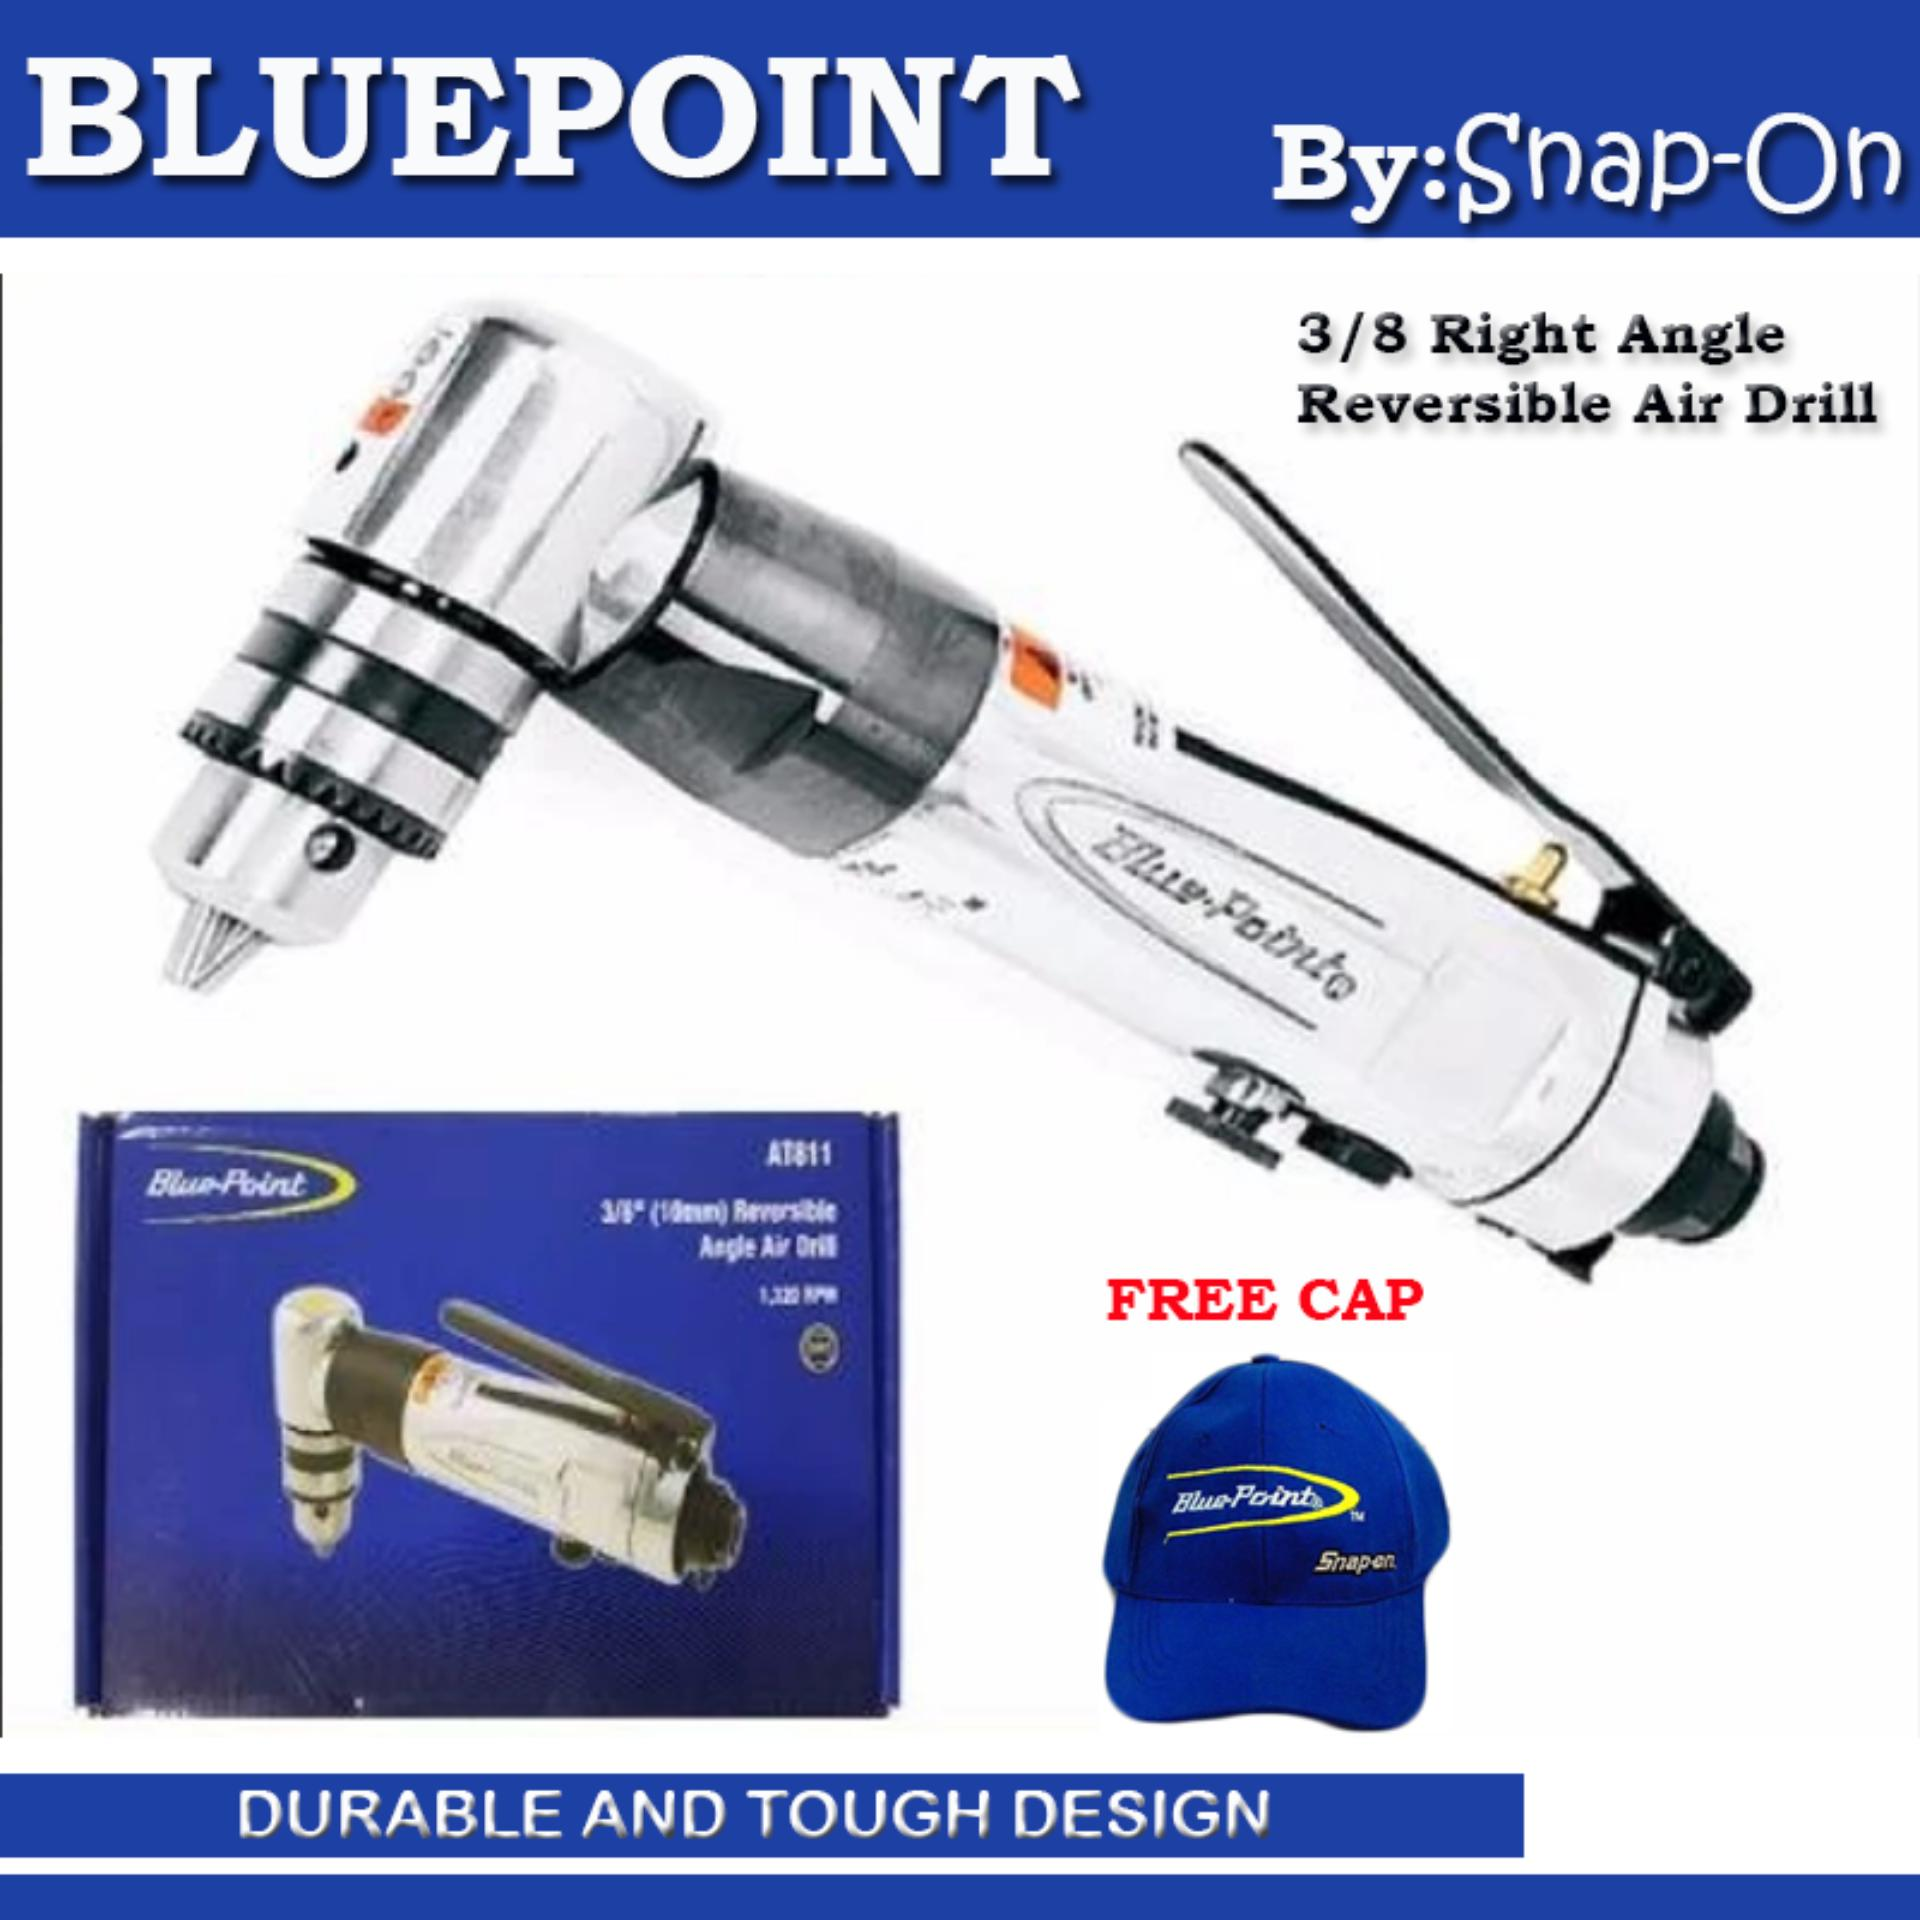 Angle Reversible Philippines Bluepoint Pneumatic 3 8 10mm Reversible Angle Air